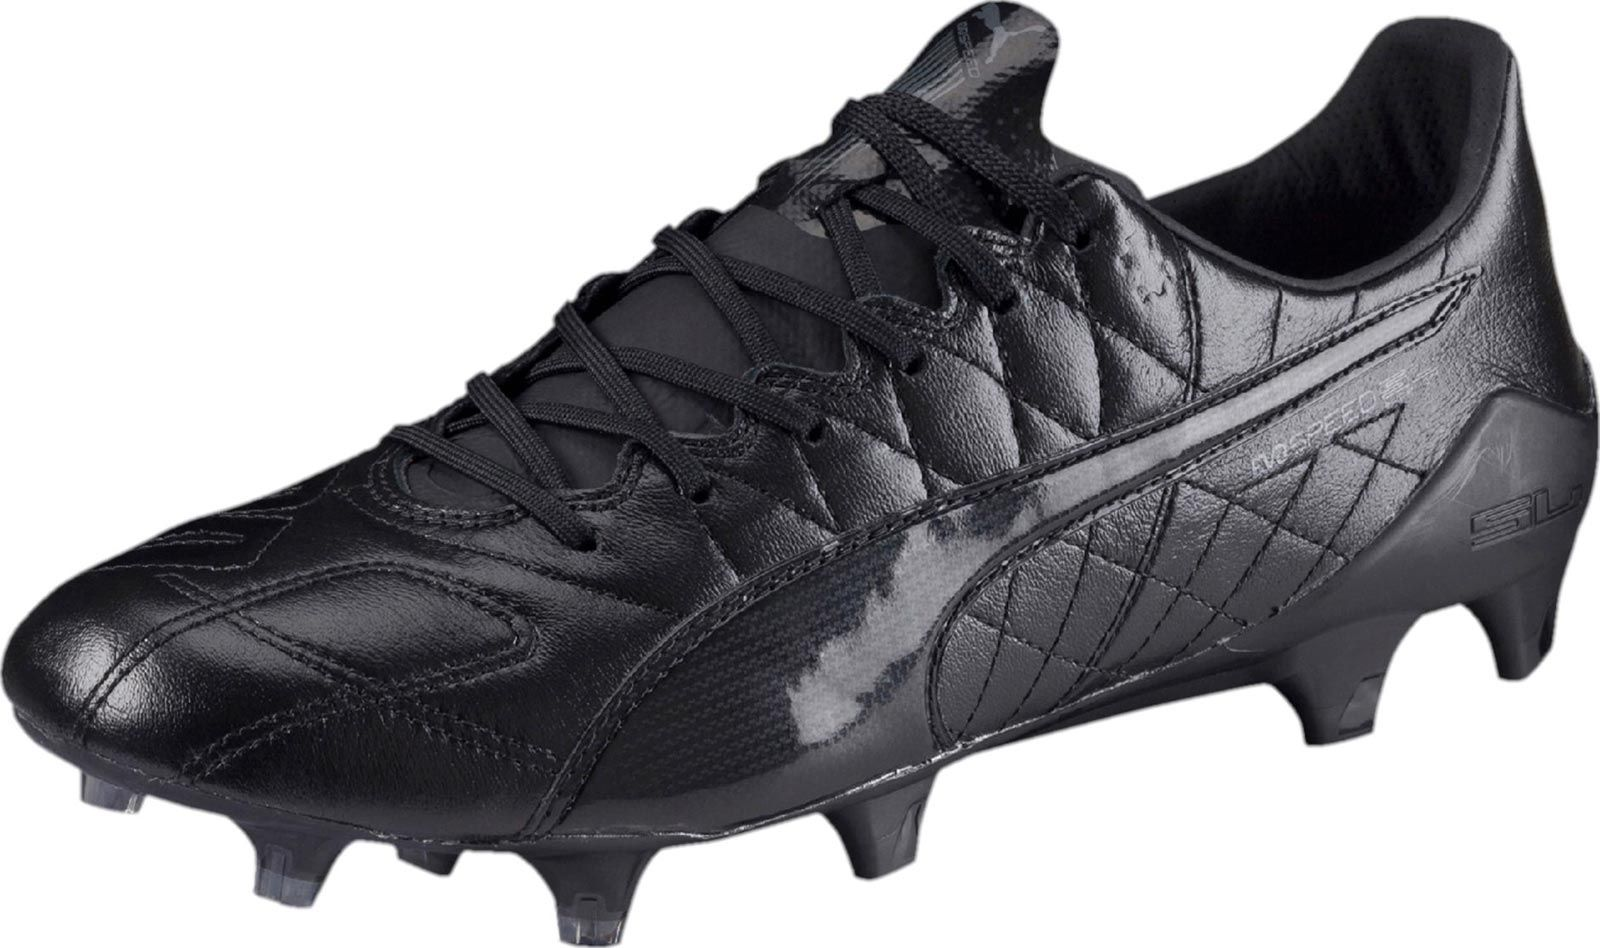 The stunning blackout Puma evoSPEED SL k-leather boots were launched today  as limited edition. 0b38ff6f2d68